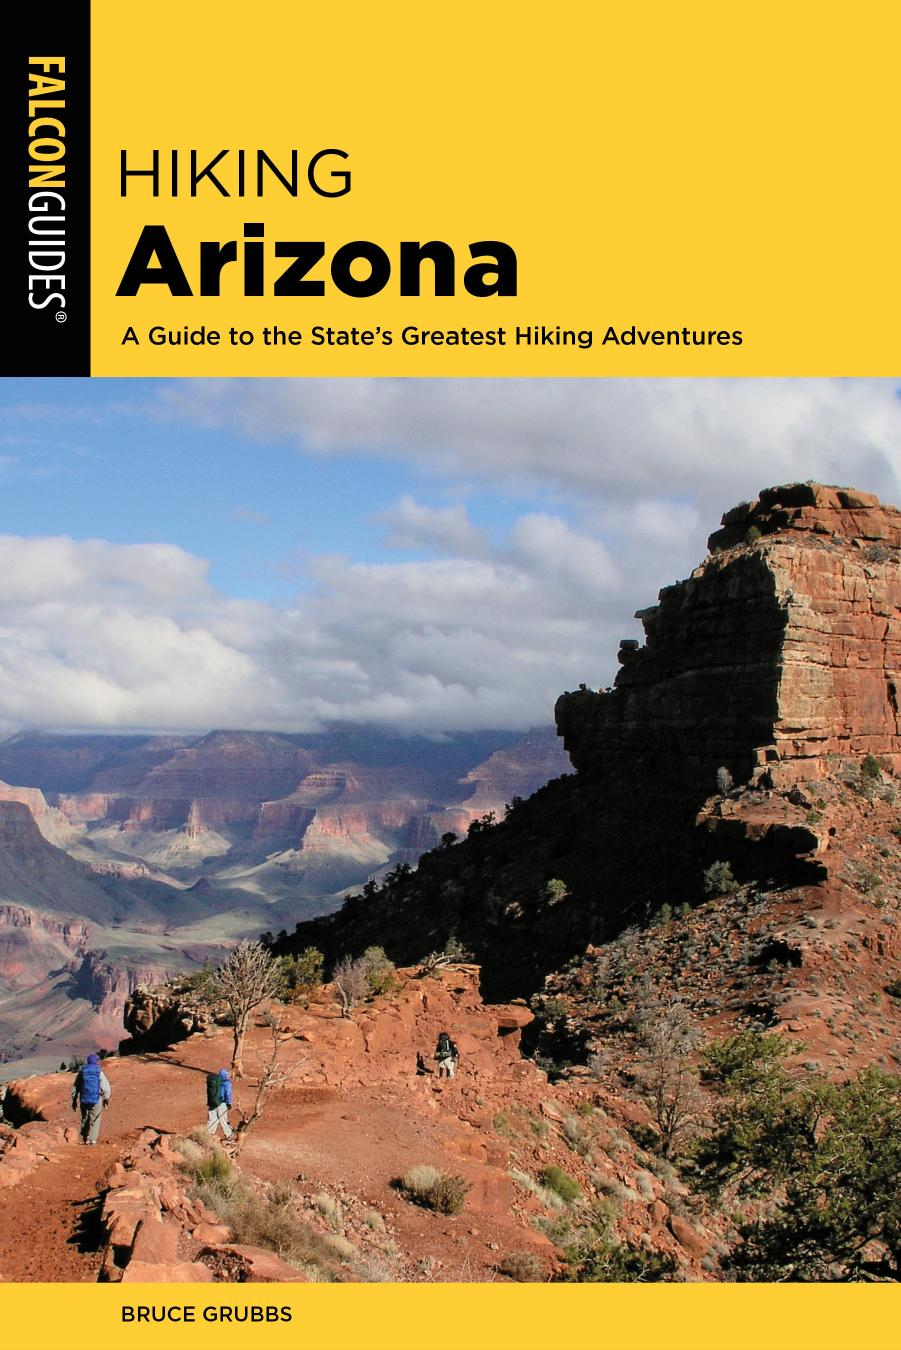 Hiking Arizona: A Guide to the State's Greatest Hiking Adventures (State Hiking Guides), 5th Edition